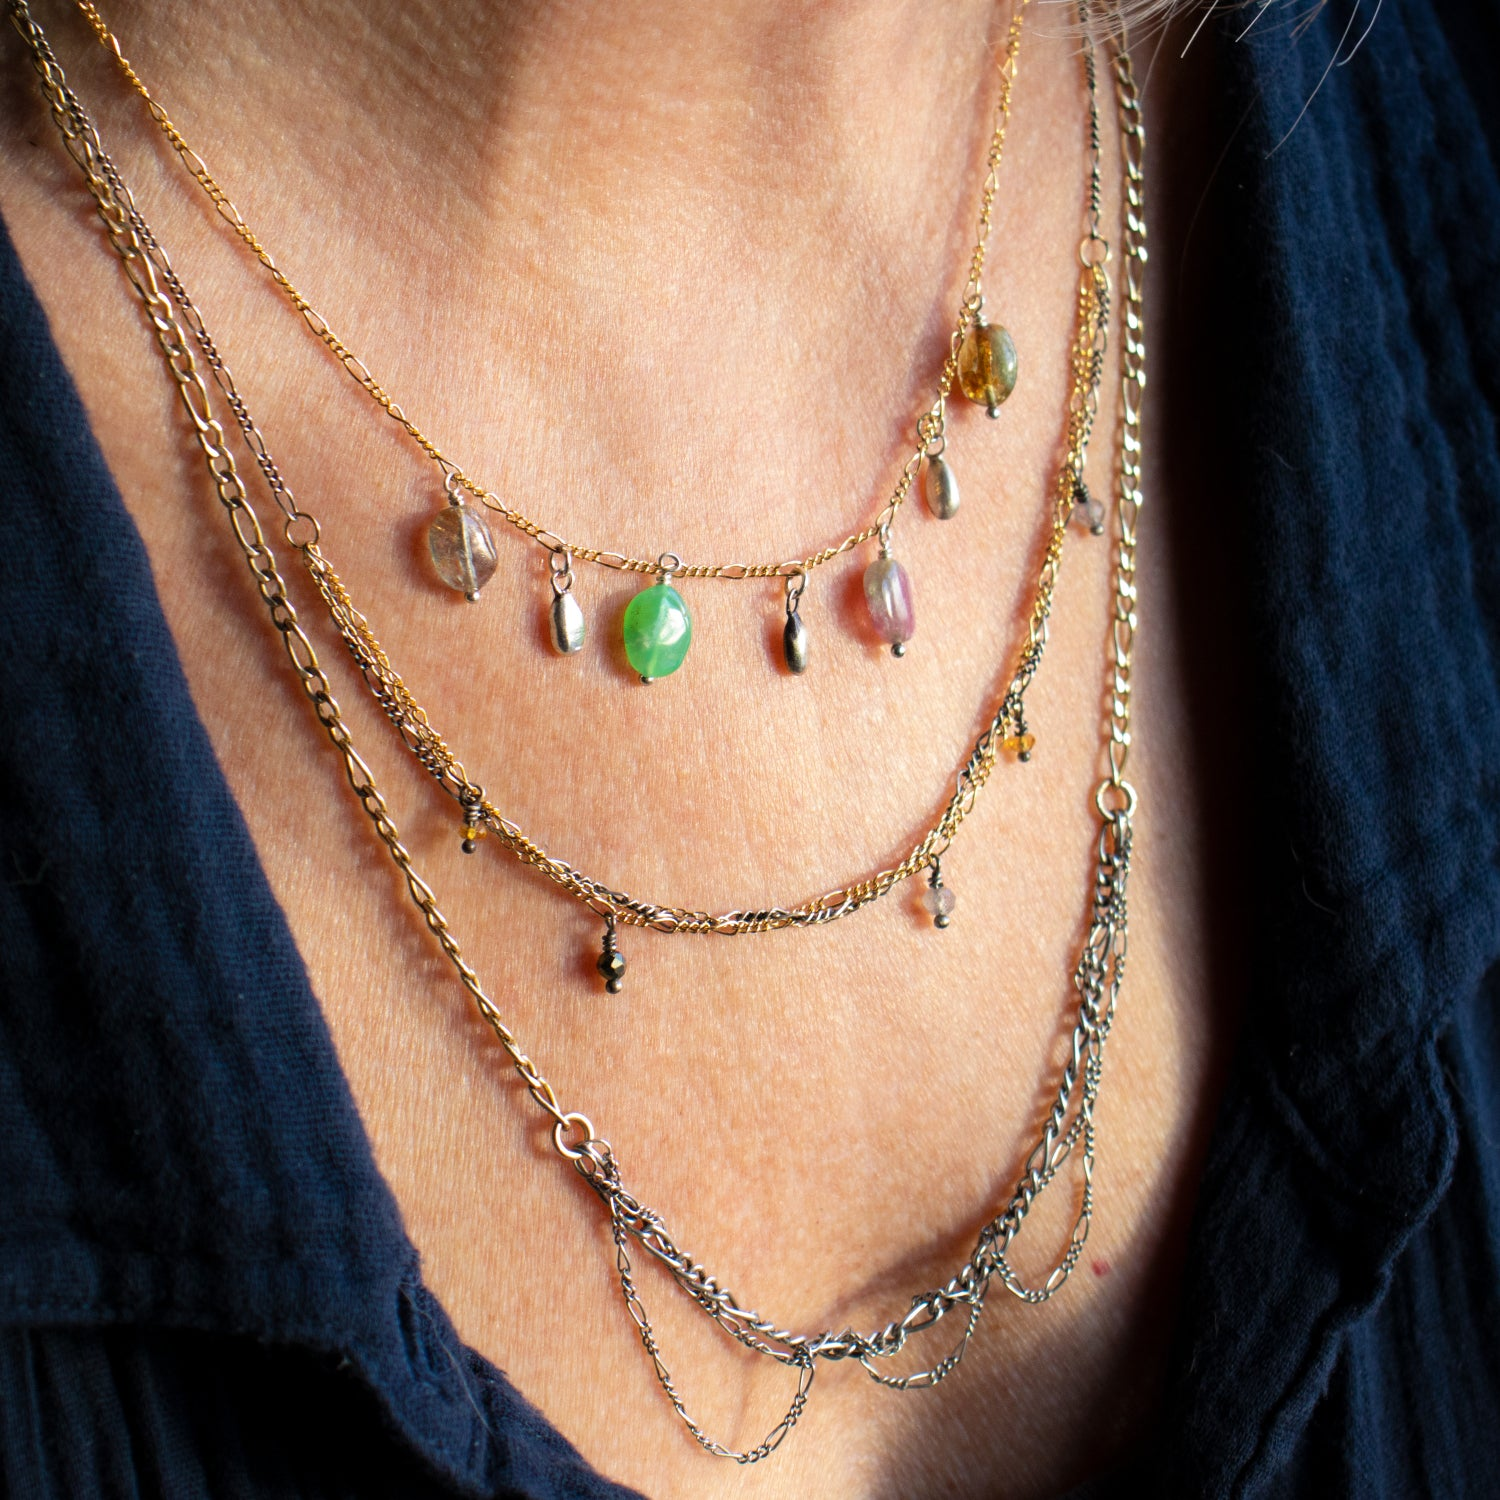 Image of Tangled Silver & Gold Mixed-Chain Beaded Choker